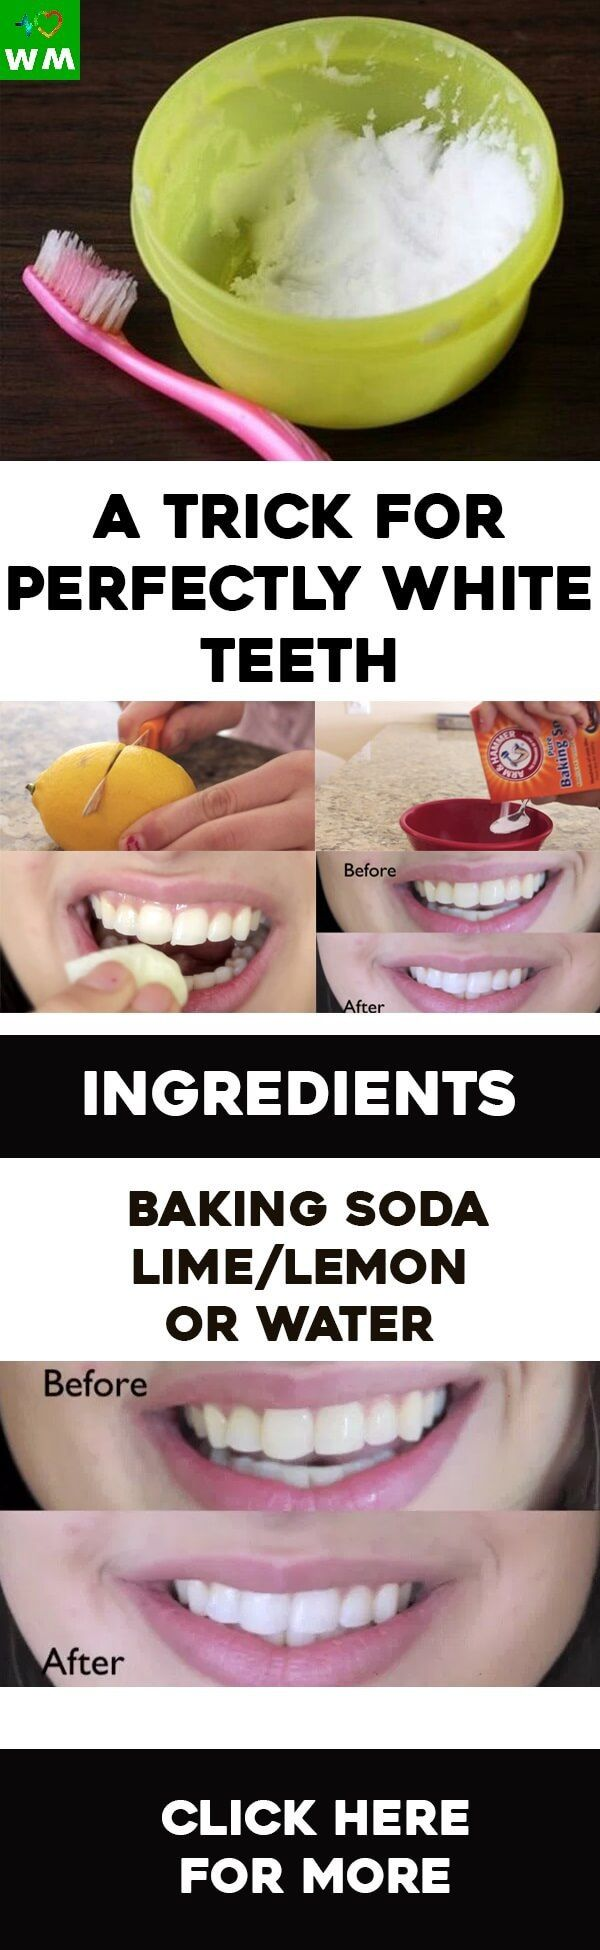 There are DIY ways to get perfect, white teeth. What is more, you can do it at your home and it takes only a few minutes of your time.